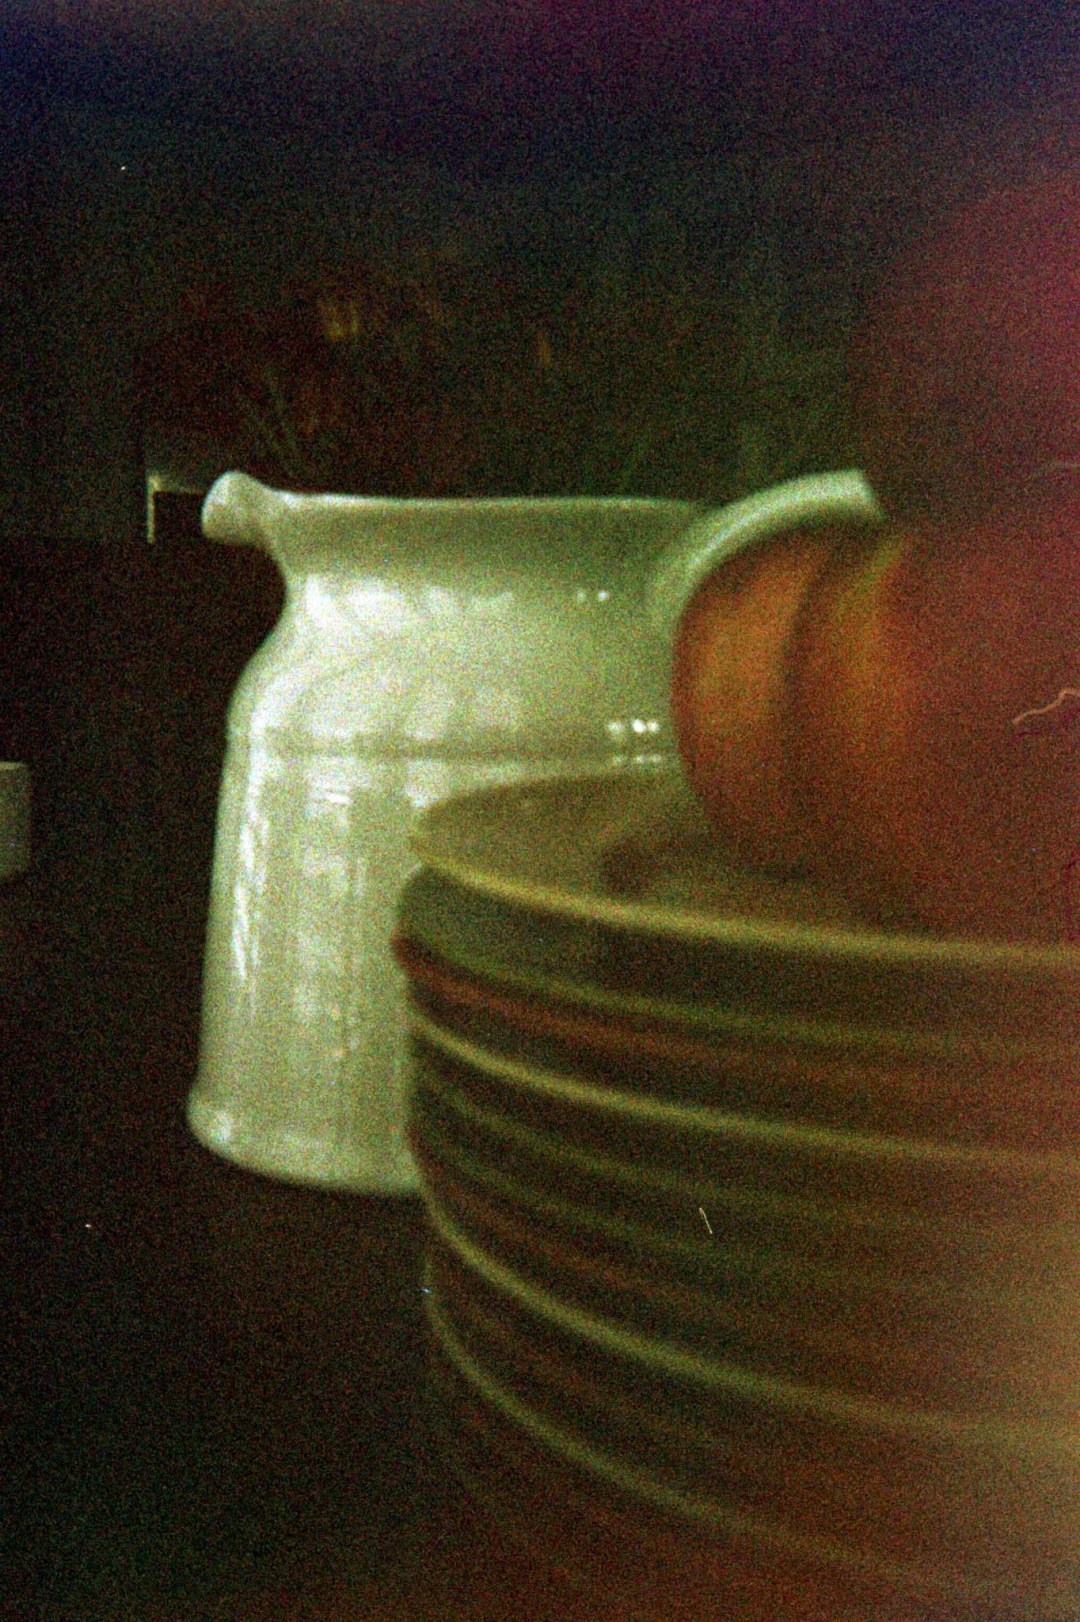 moody film photography, disposable camera, no filter images, unedited photos, fall breakfast table